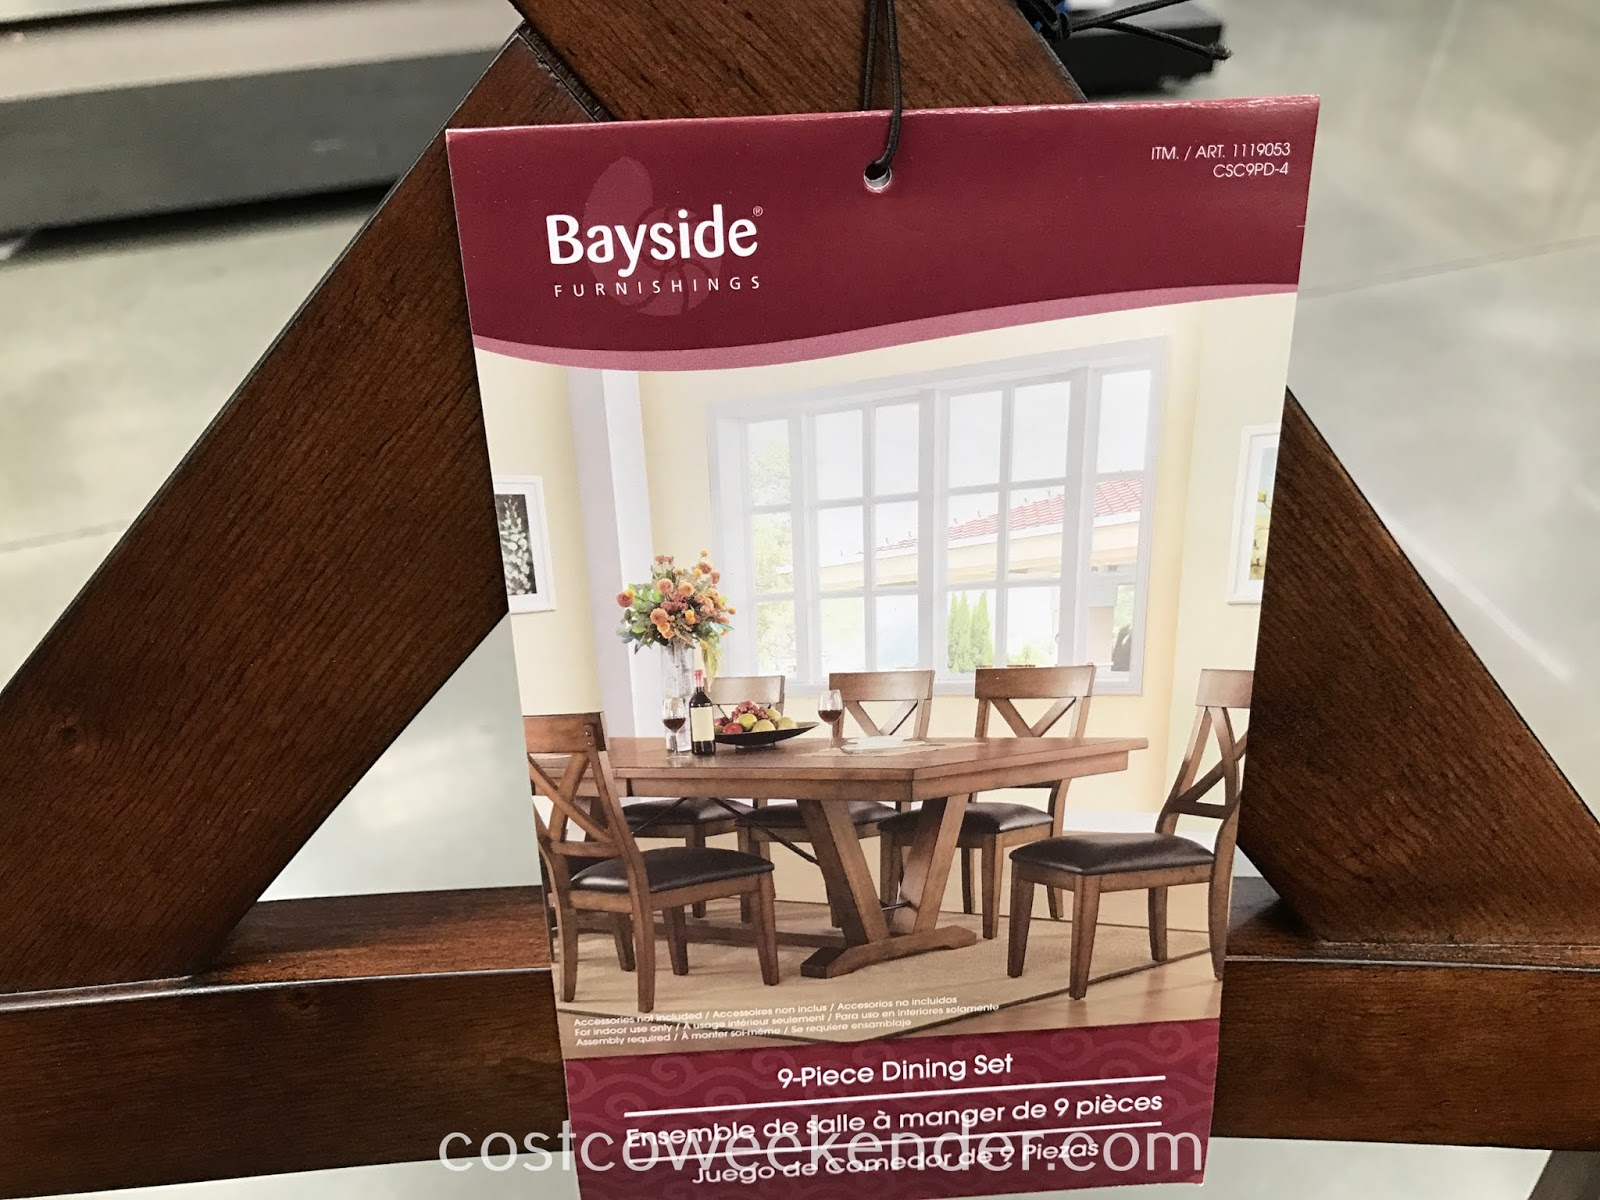 Bayside Furnishings 9-piece Dining Set: rustic yet practical